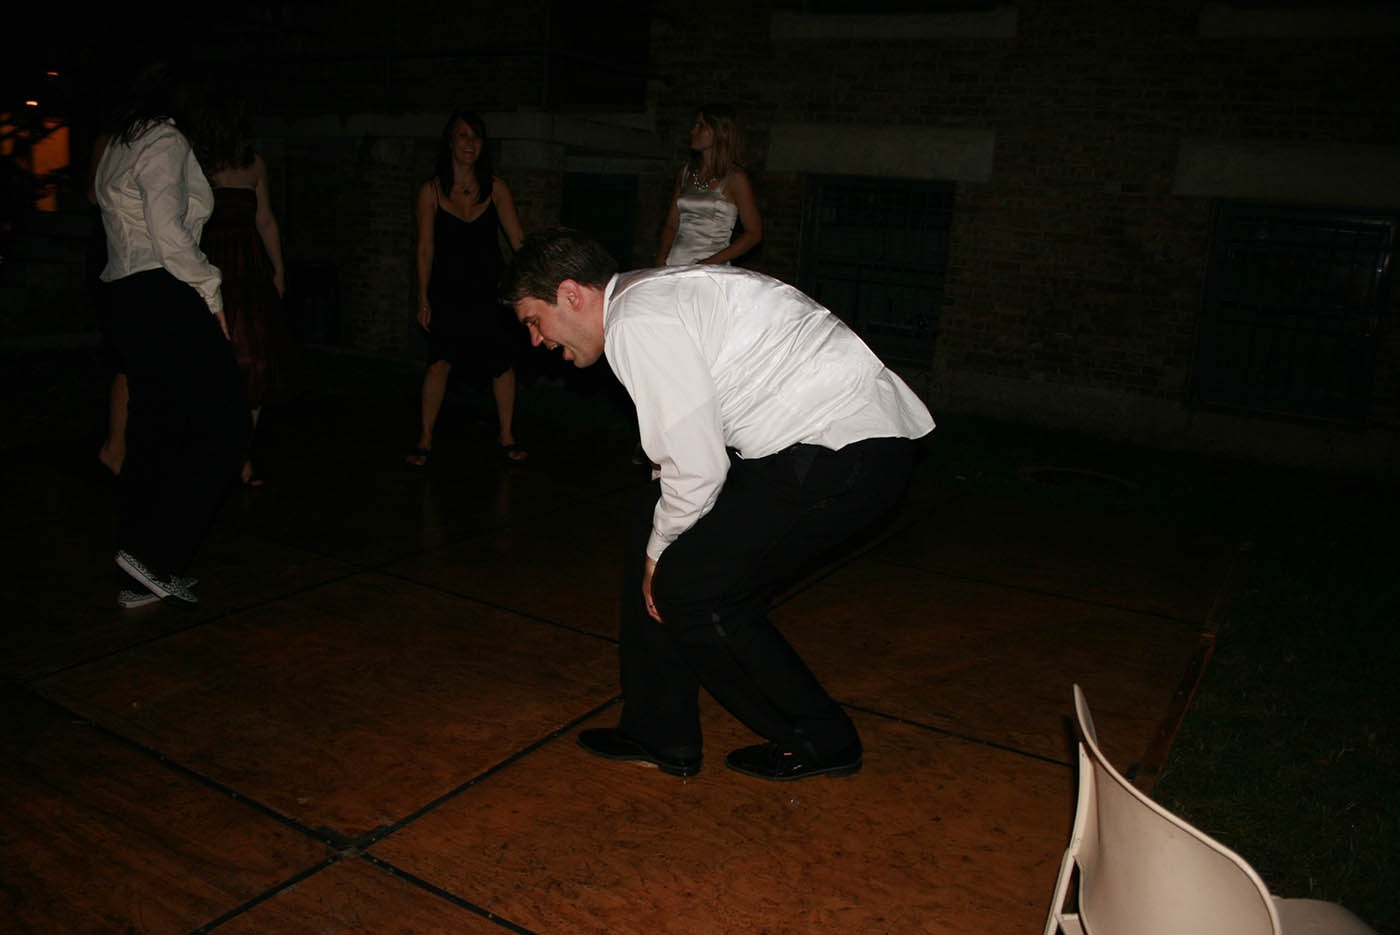 Dale breakdancing at Jen and Dale's Glessner House Wedding in Chicago, Illinois.